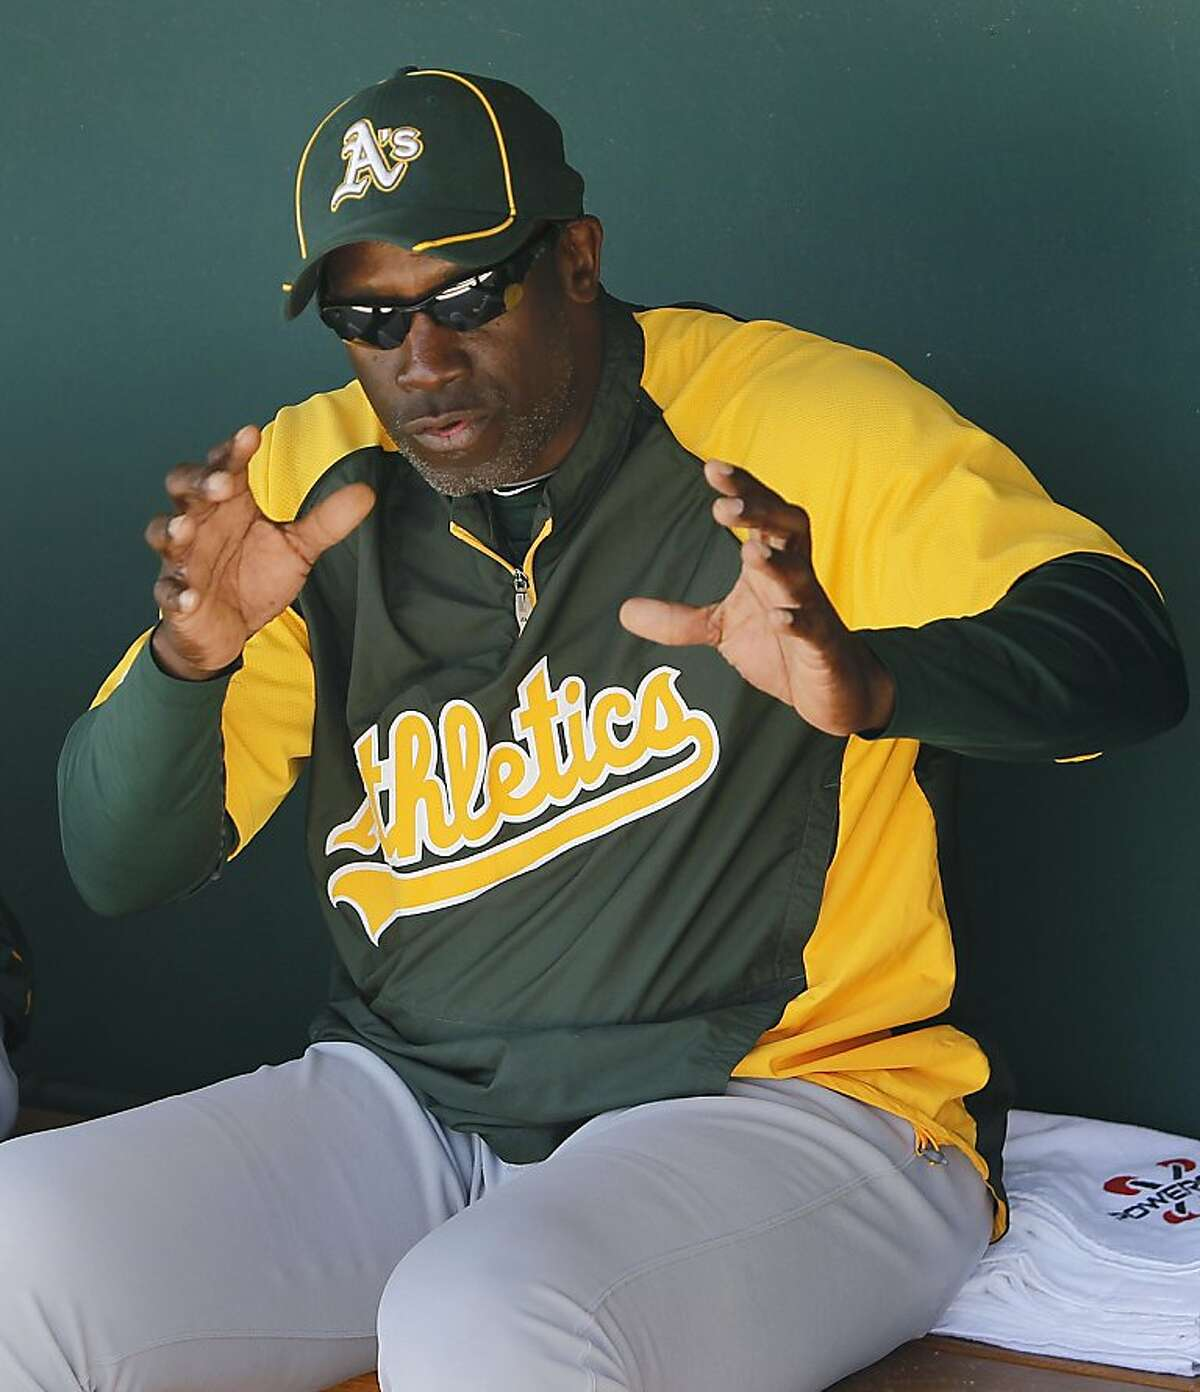 Batting coach Chili Davis works with a player in the dugout before the Oakland A's Cactus League spring training game against the Los Angeles Dodgers in Glendale, Ariz. on Thursday, March 8, 2012.